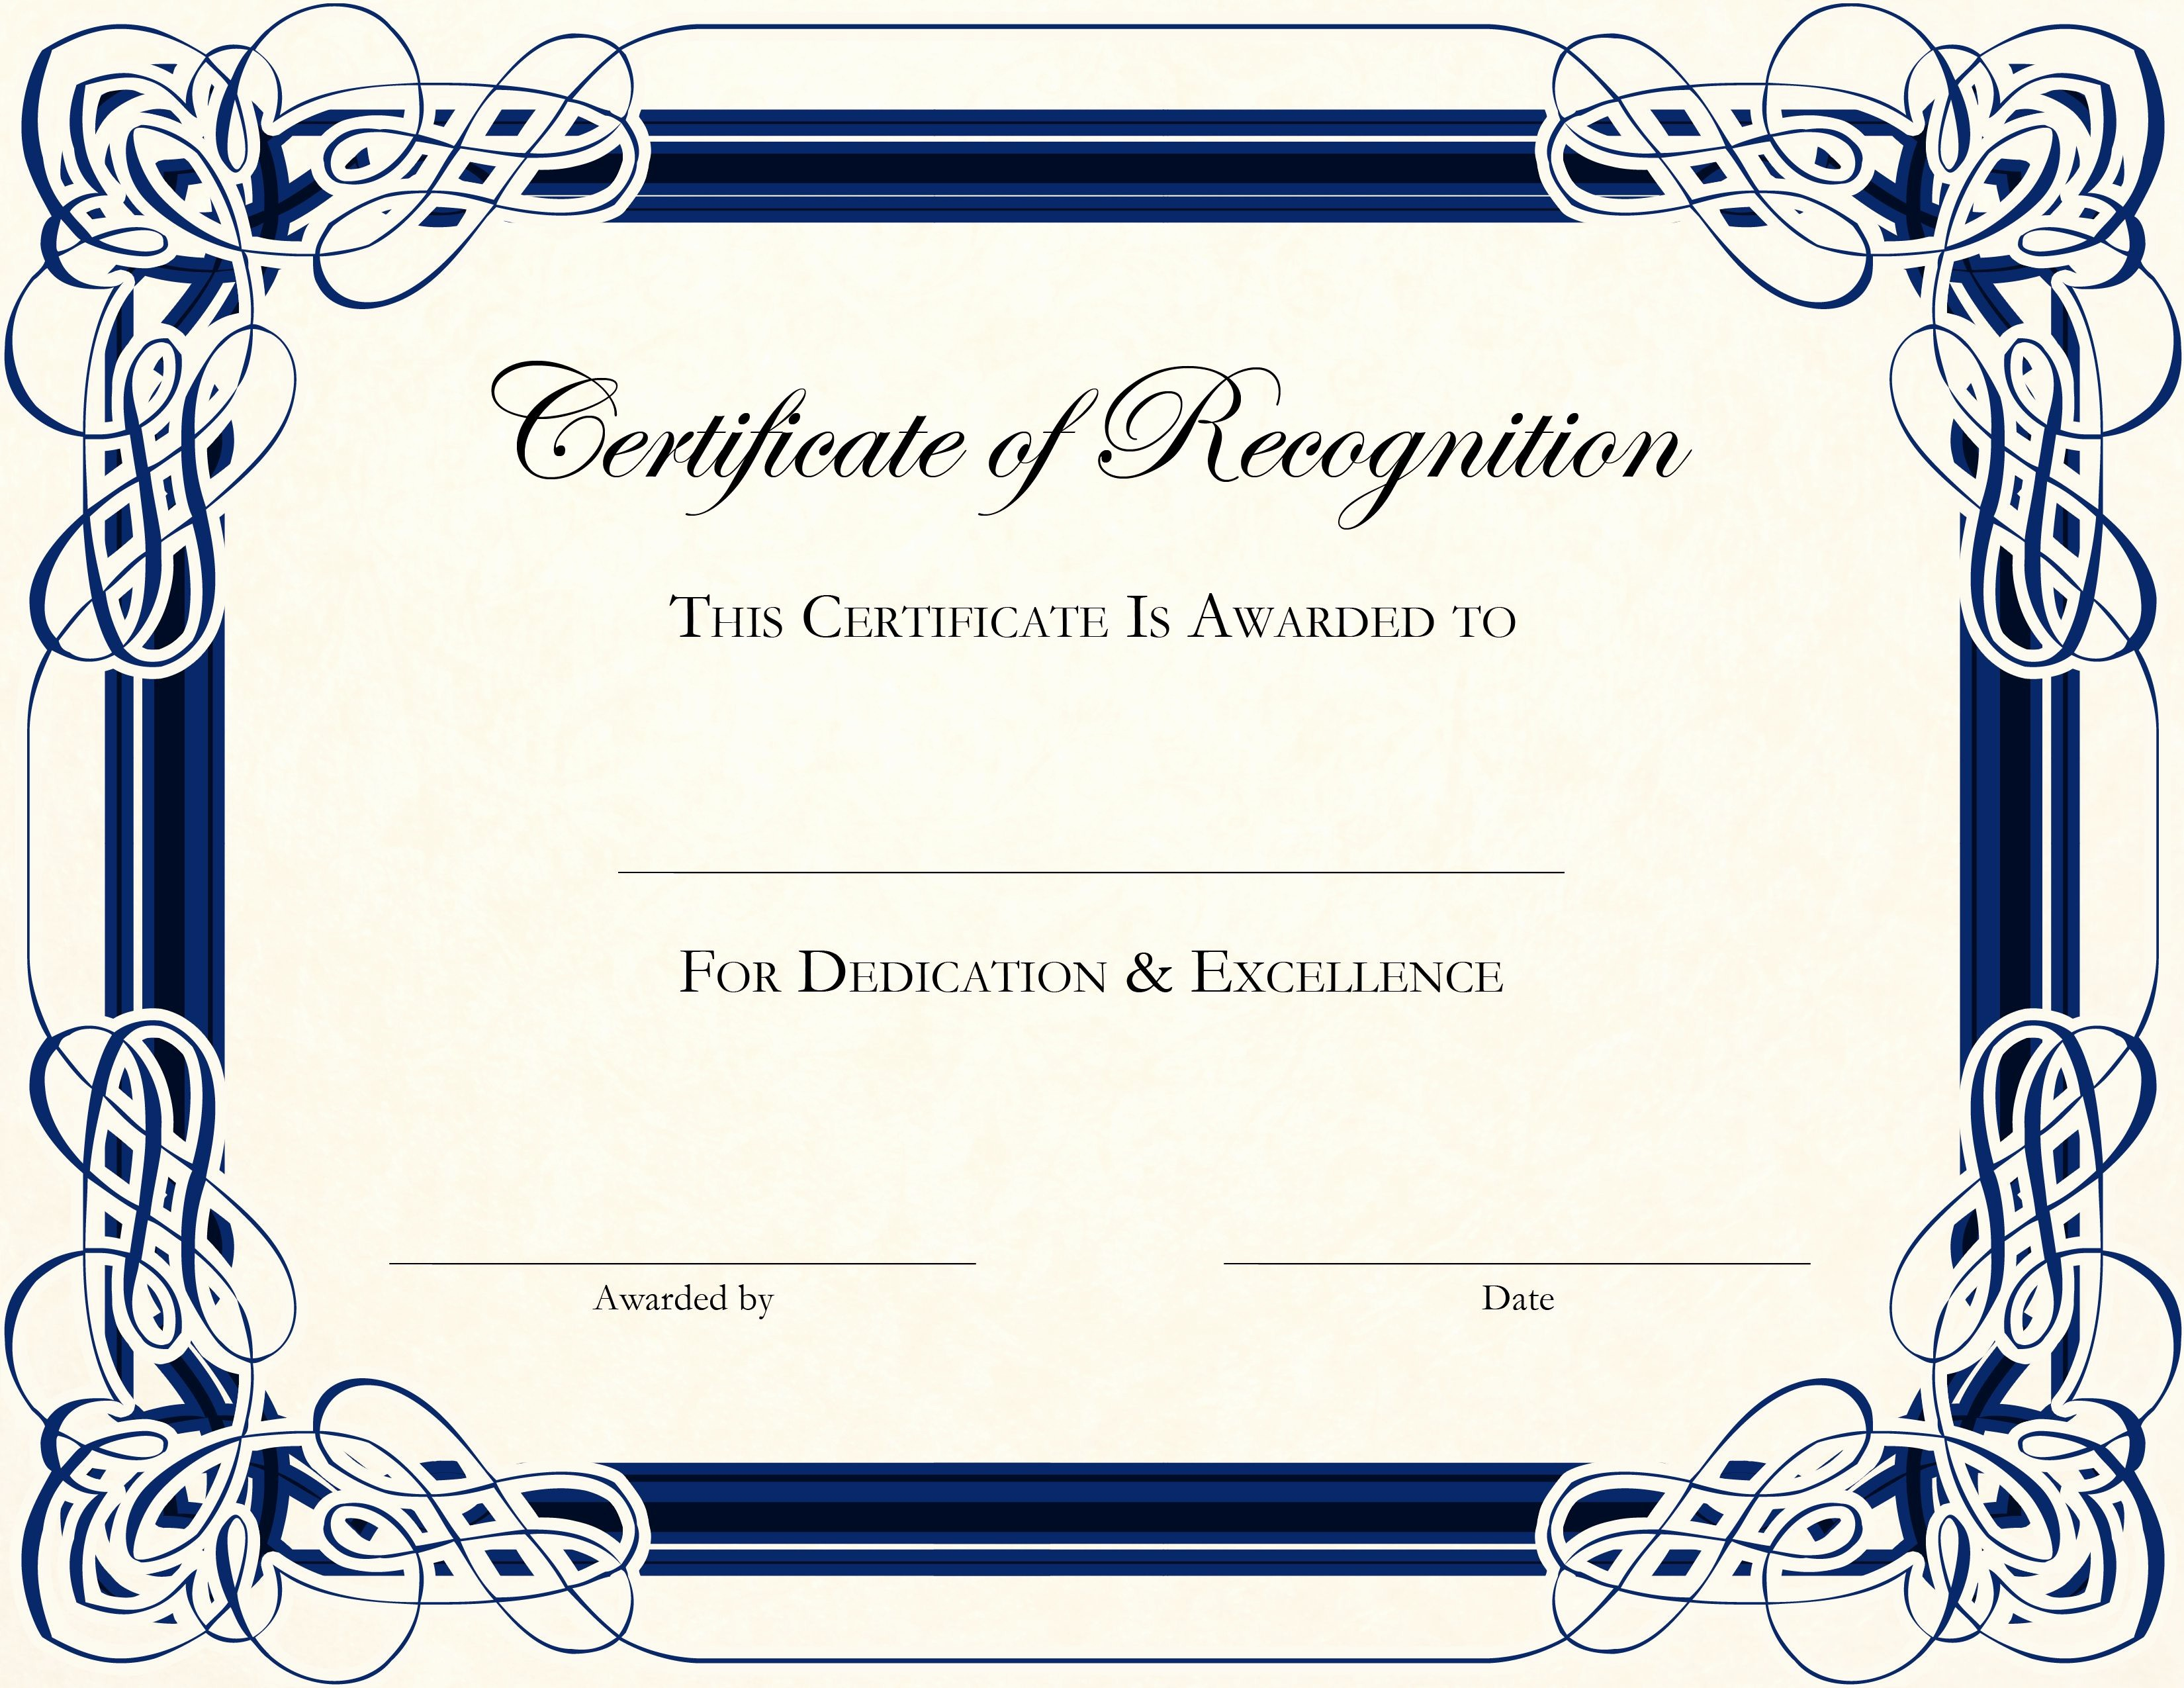 Free Printable Blank Certificate Borders Inspirational Pin by Suzanne Poliner On Lenny Pinterest